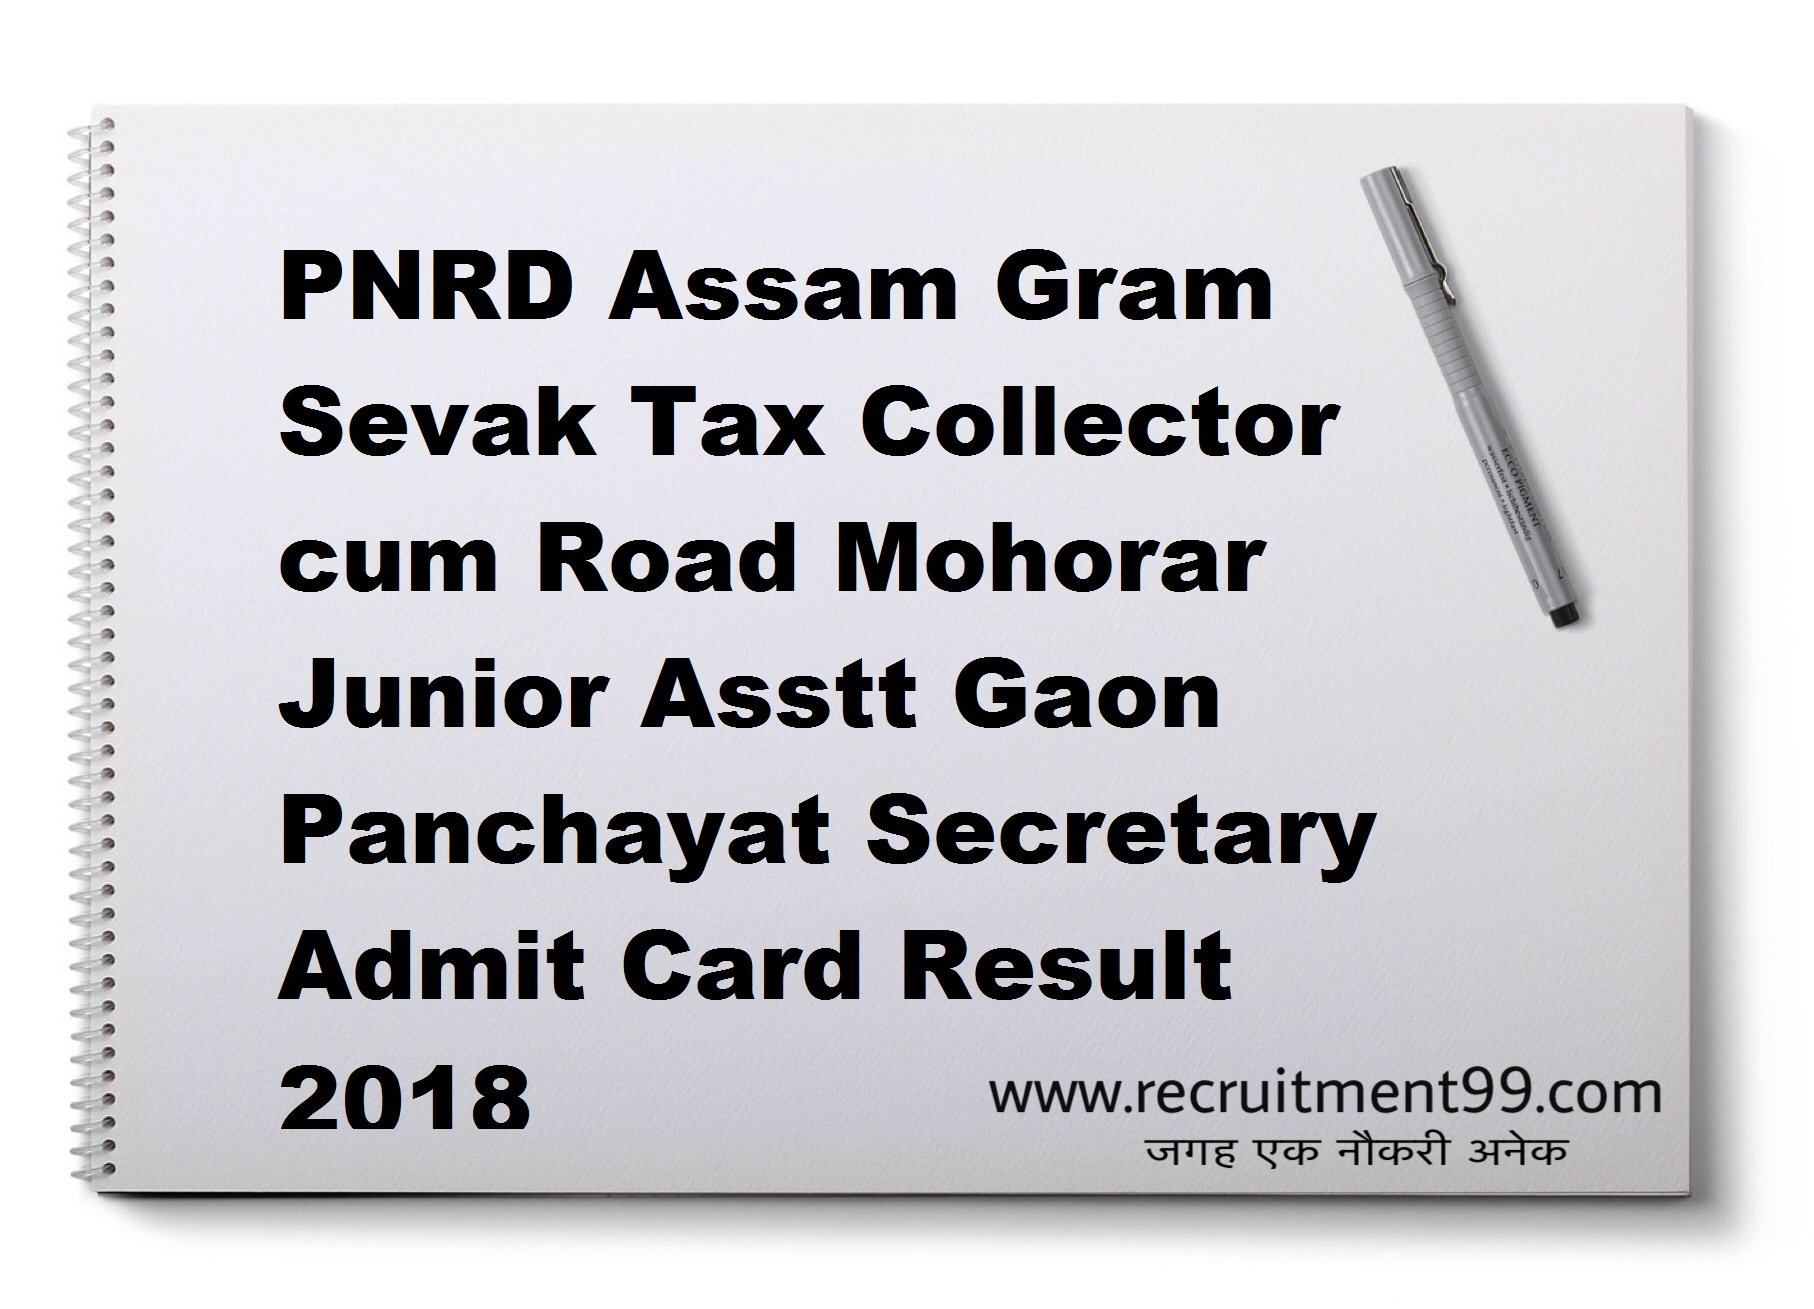 PNRD Assam Gram Sevak Tax Collector cum Road Mohorar Junior Asstt Gaon Panchayat Secretary Admit Card Result 2018